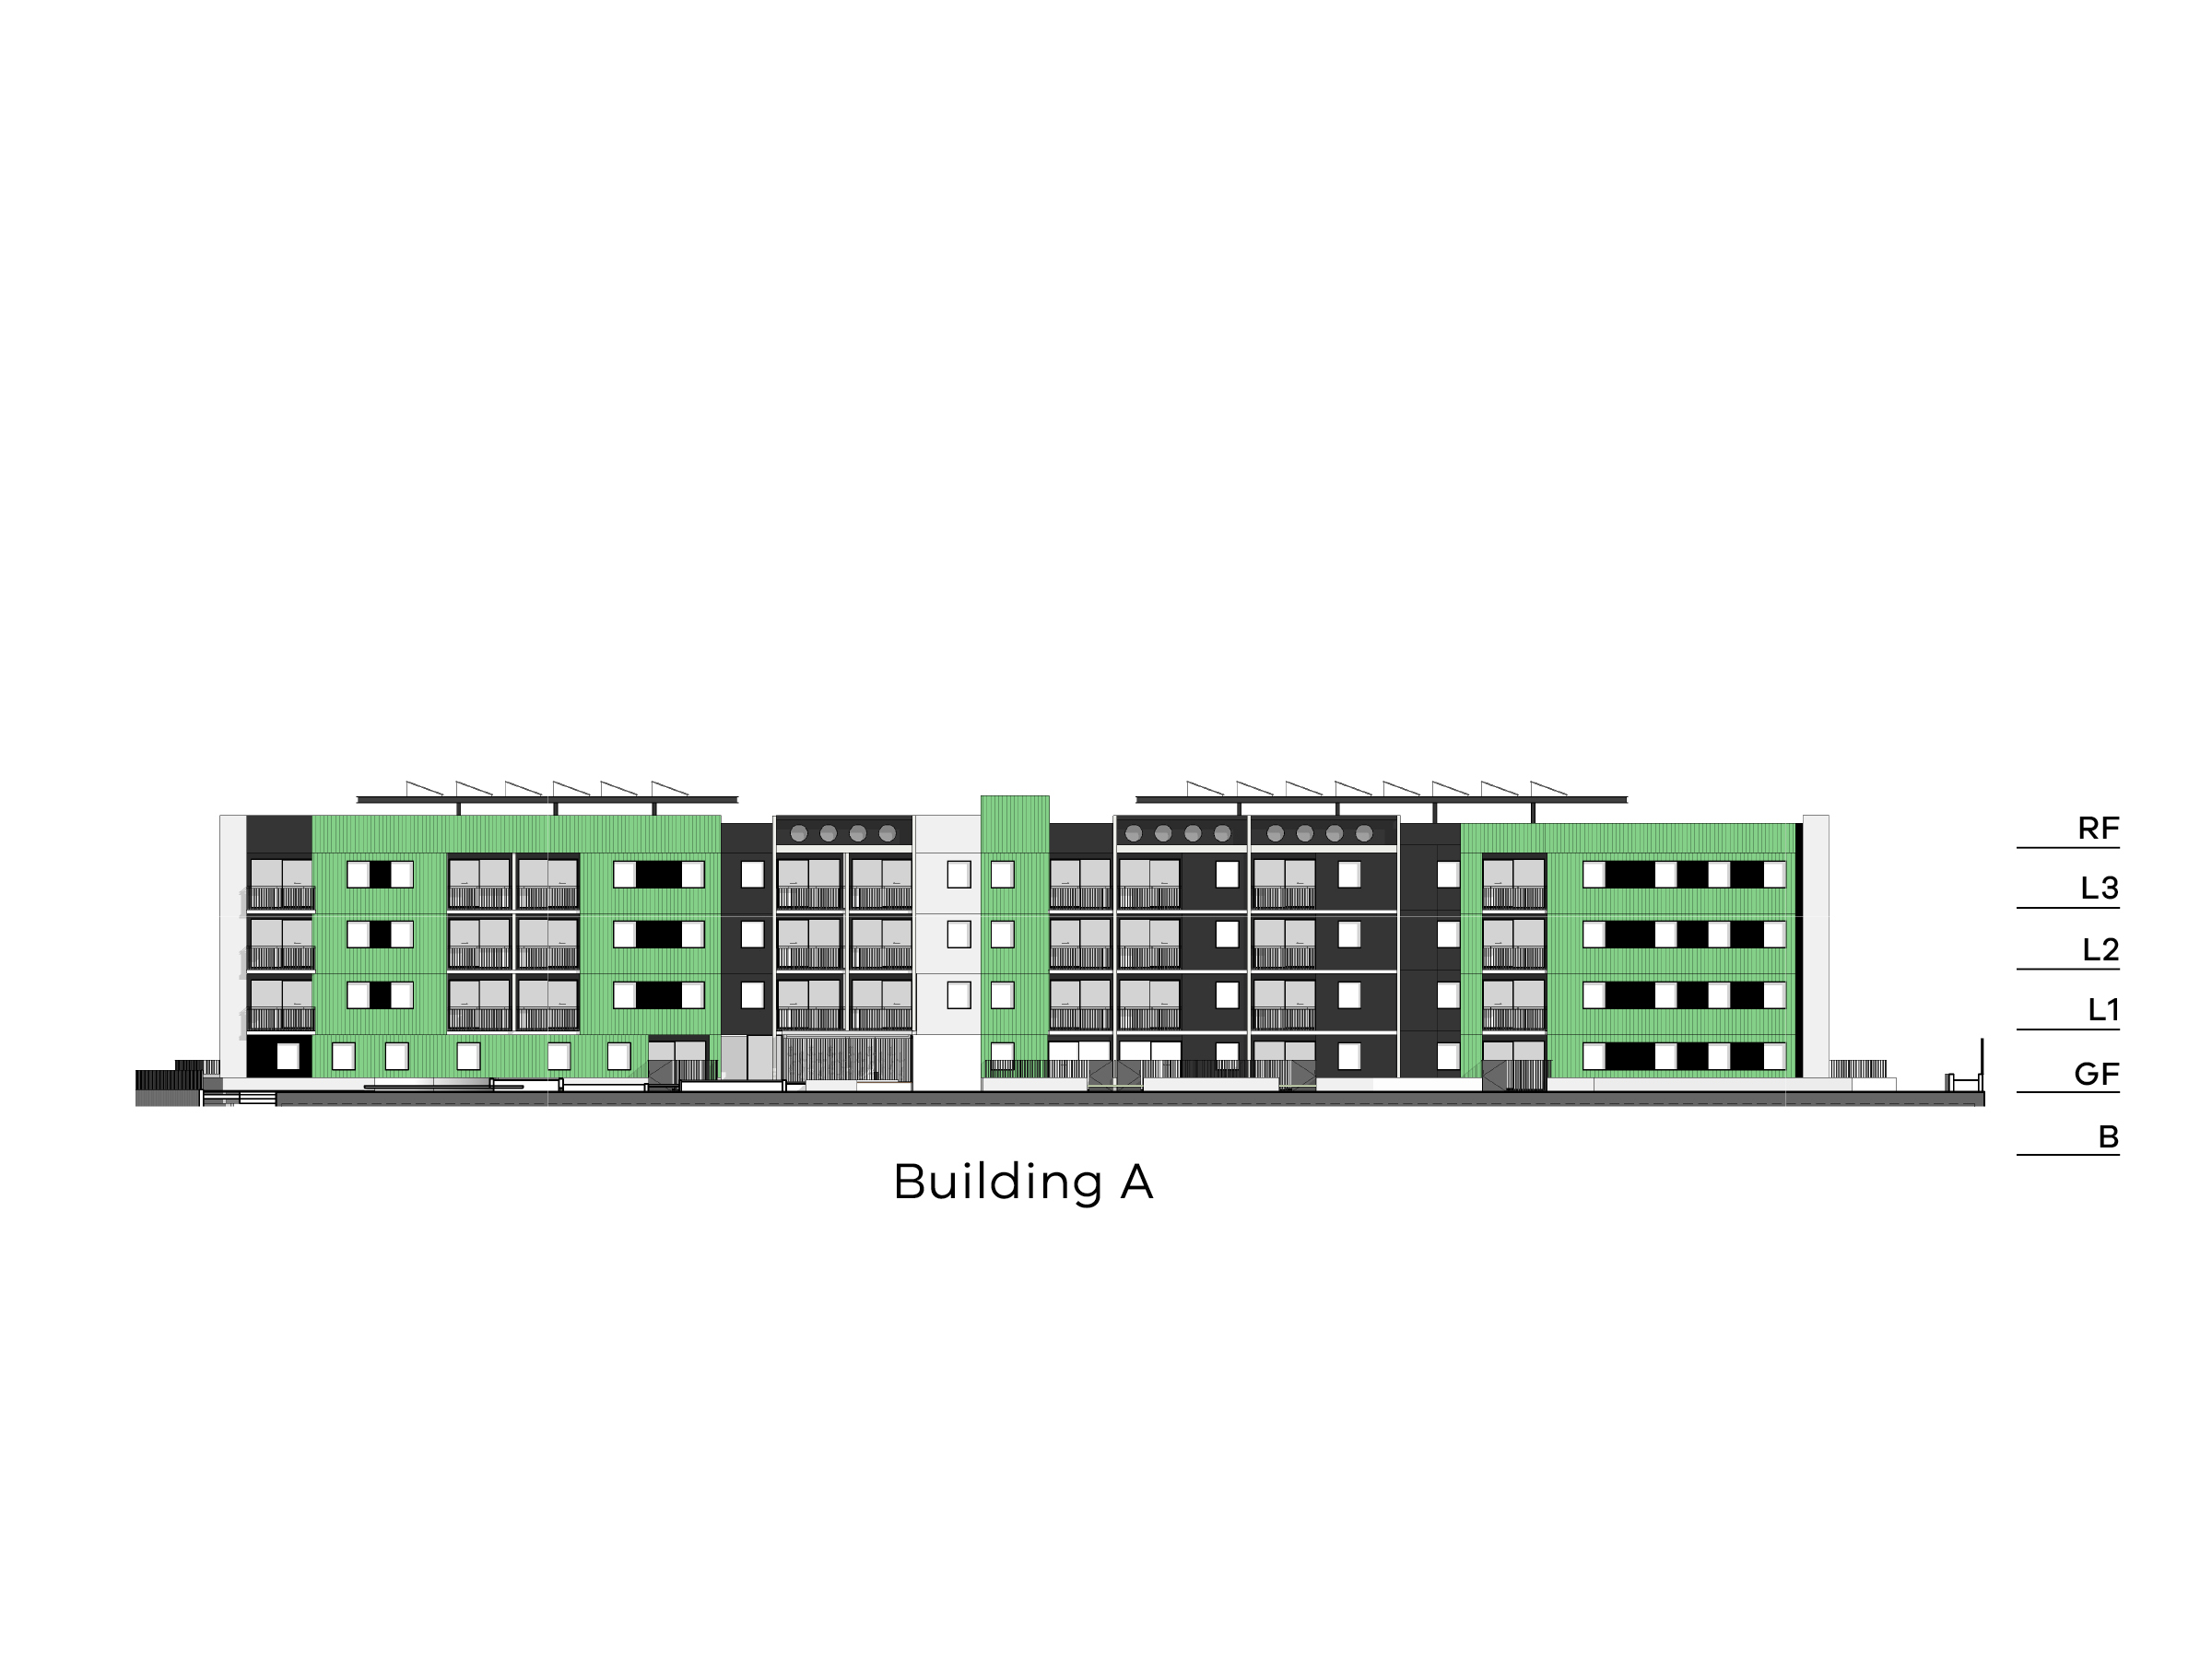 Diagram showing the height of building A as seen from the on-site walkway looking towards Victoria Street. Building A has a basement, a ground floor, level 1-3 and a flat roof.